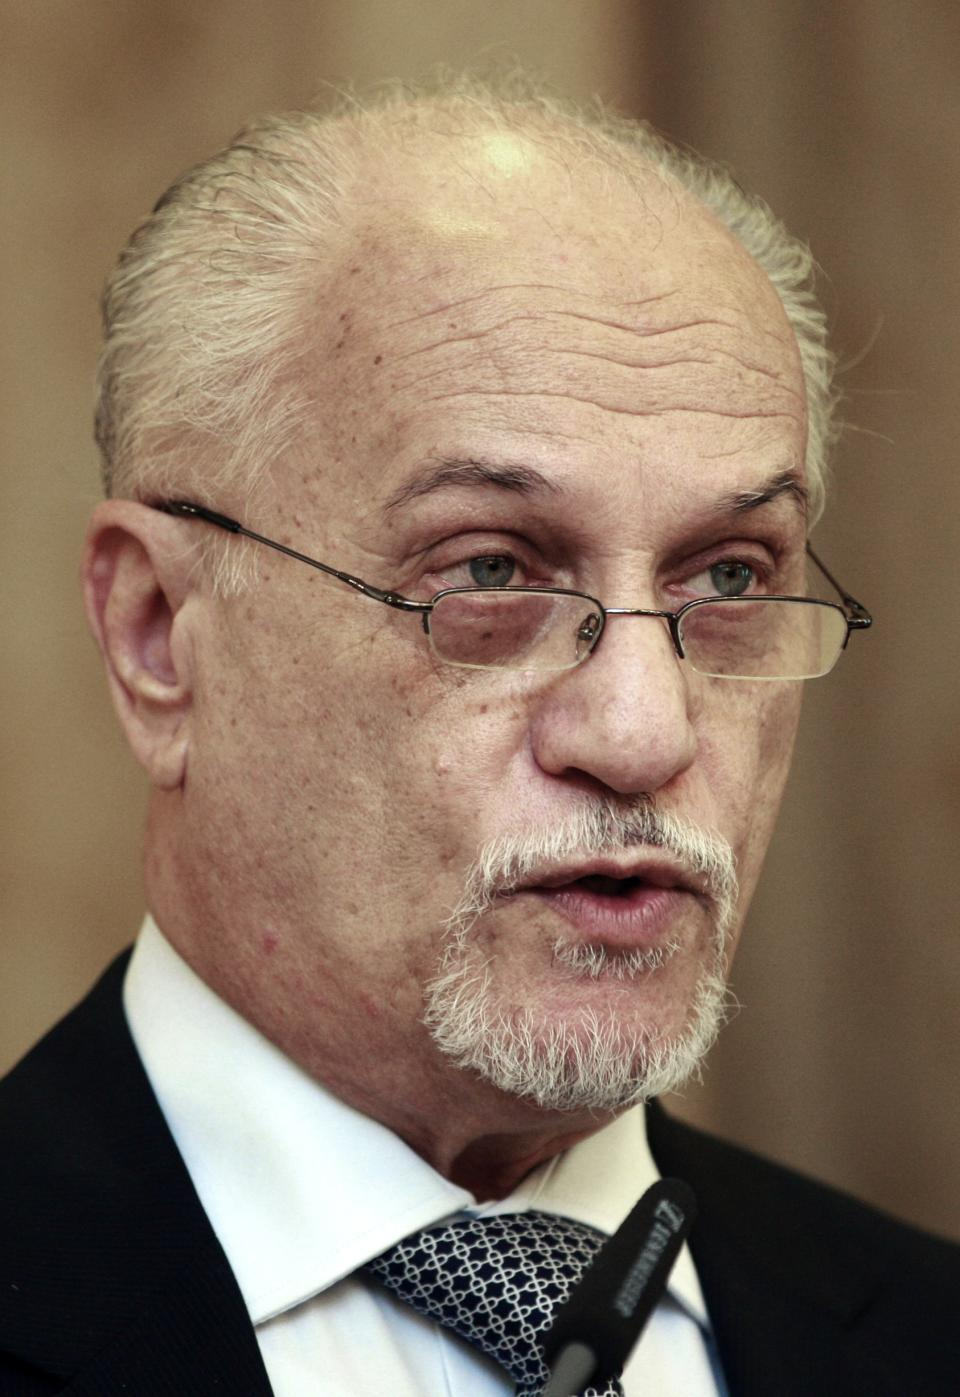 Hussein al-Shahristani, deputy Prime Minister for Energy speaks to the press in Baghdad, Iraq, Wednesday, Oct. 10, 2012. Iraq's top energy official is predicting that the country's current oil production of 3.4 million barrels per day will double by 2015. (AP Photo/Hadi Mizban)